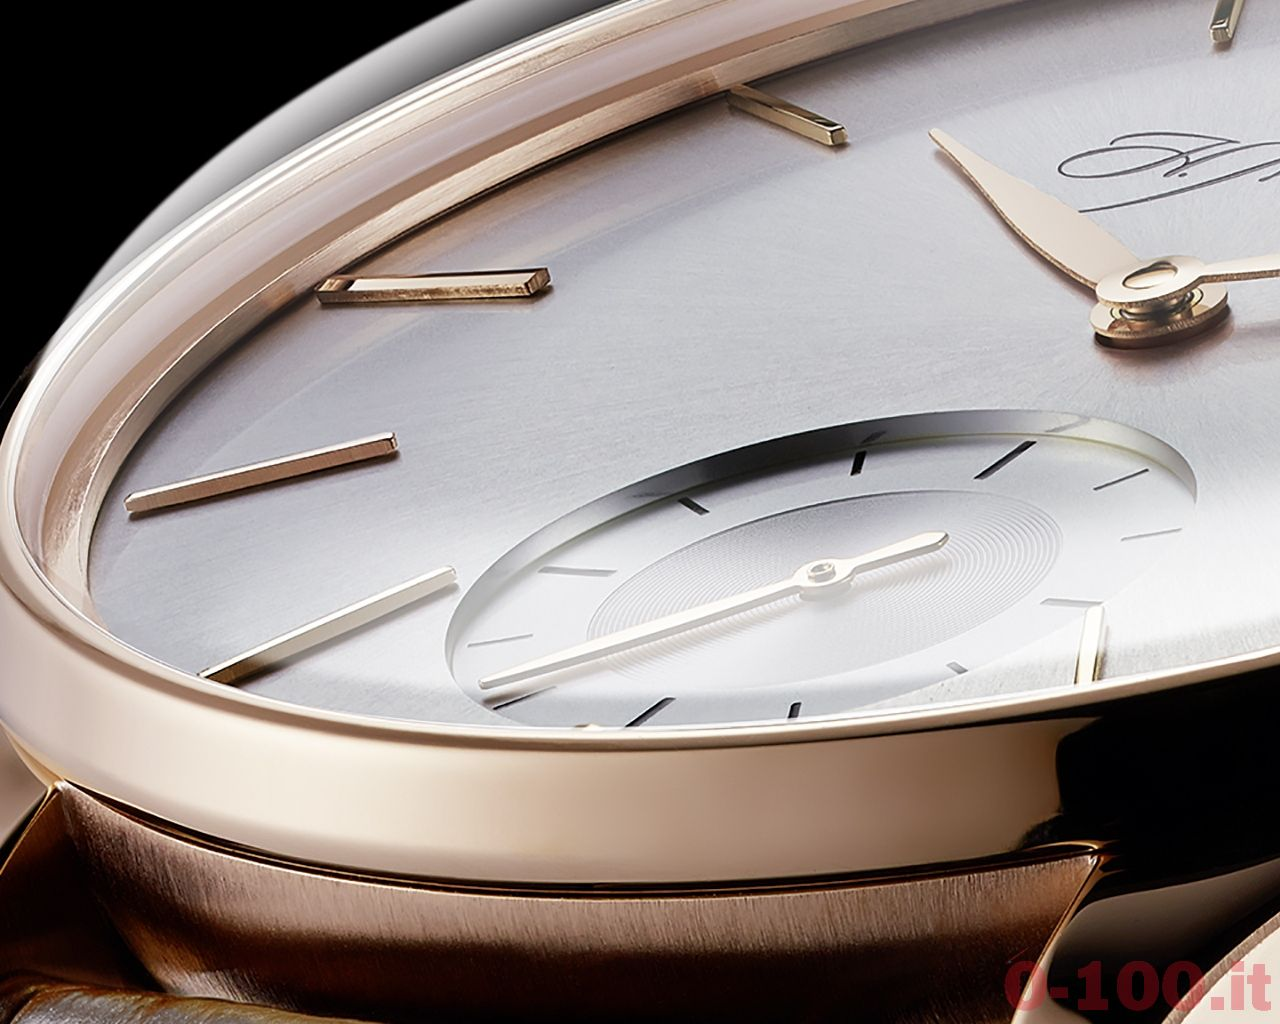 Baselworld-2014-H. Moser & Cie Venturer Small Seconds _0-10019